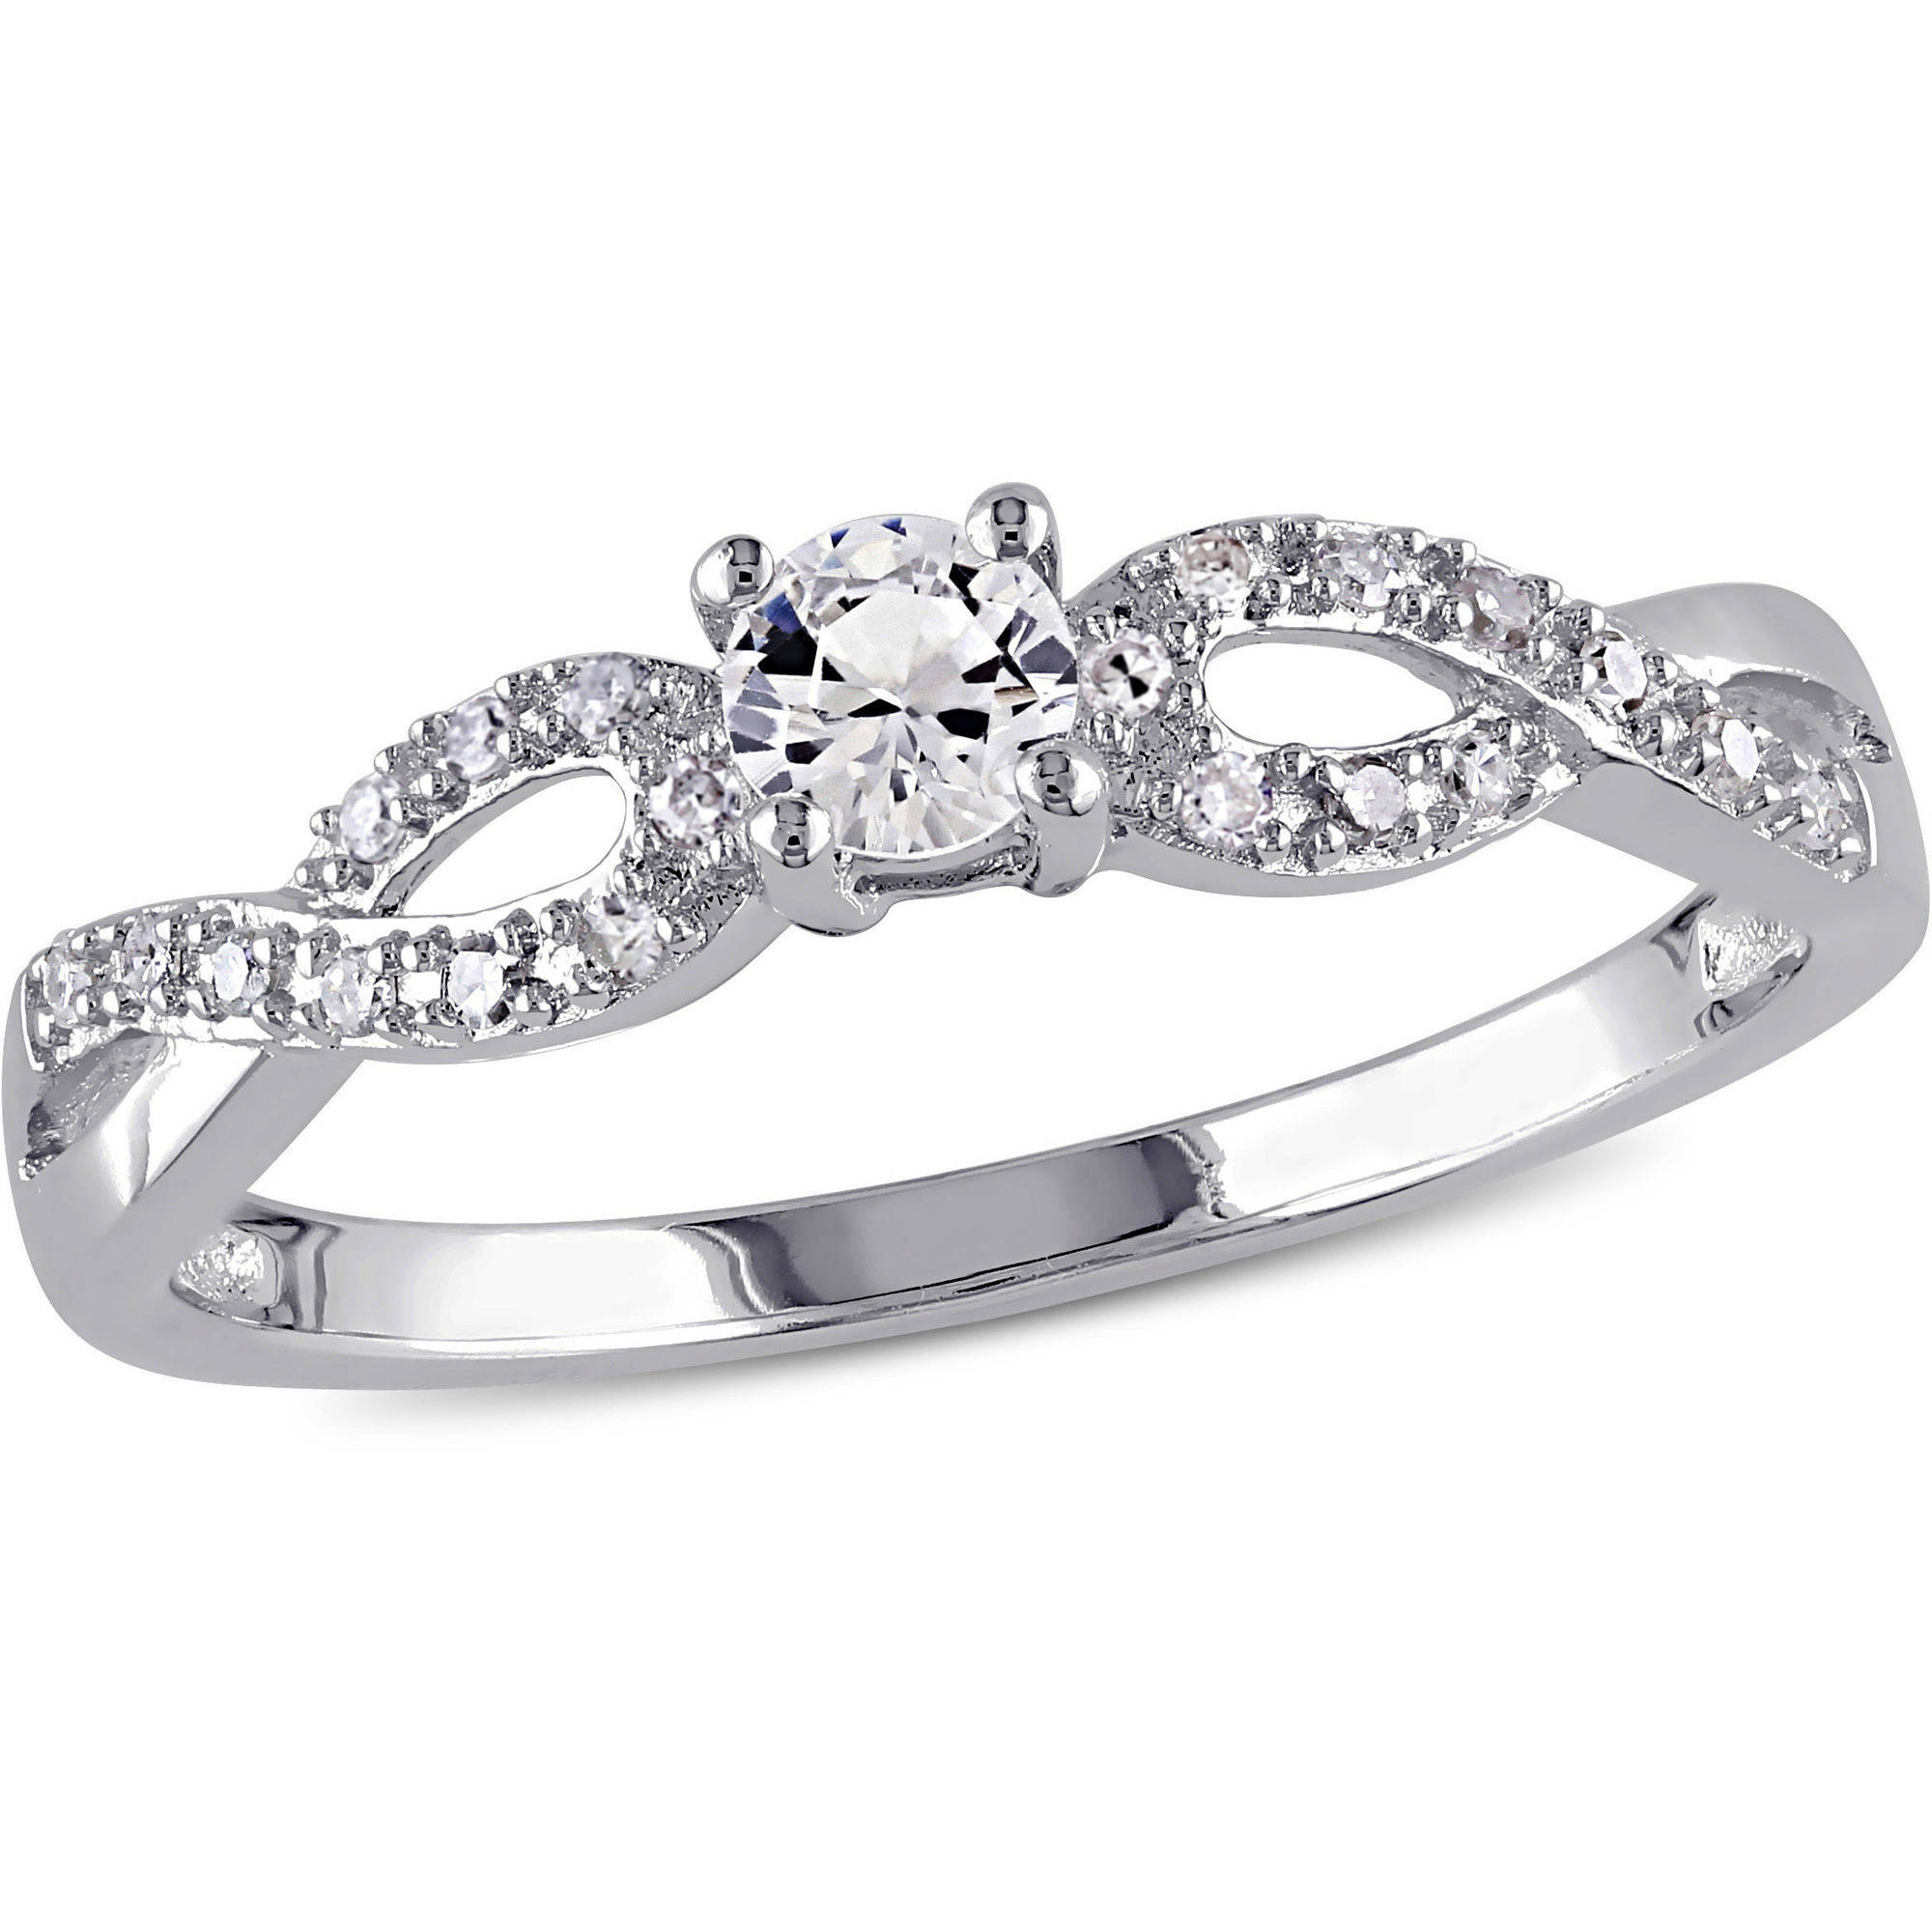 Miabella 1/4 Carat T.G.W. Created White Sapphire and 1/10 Carat T.W. Sterling Silver Infinity Engagement Ring